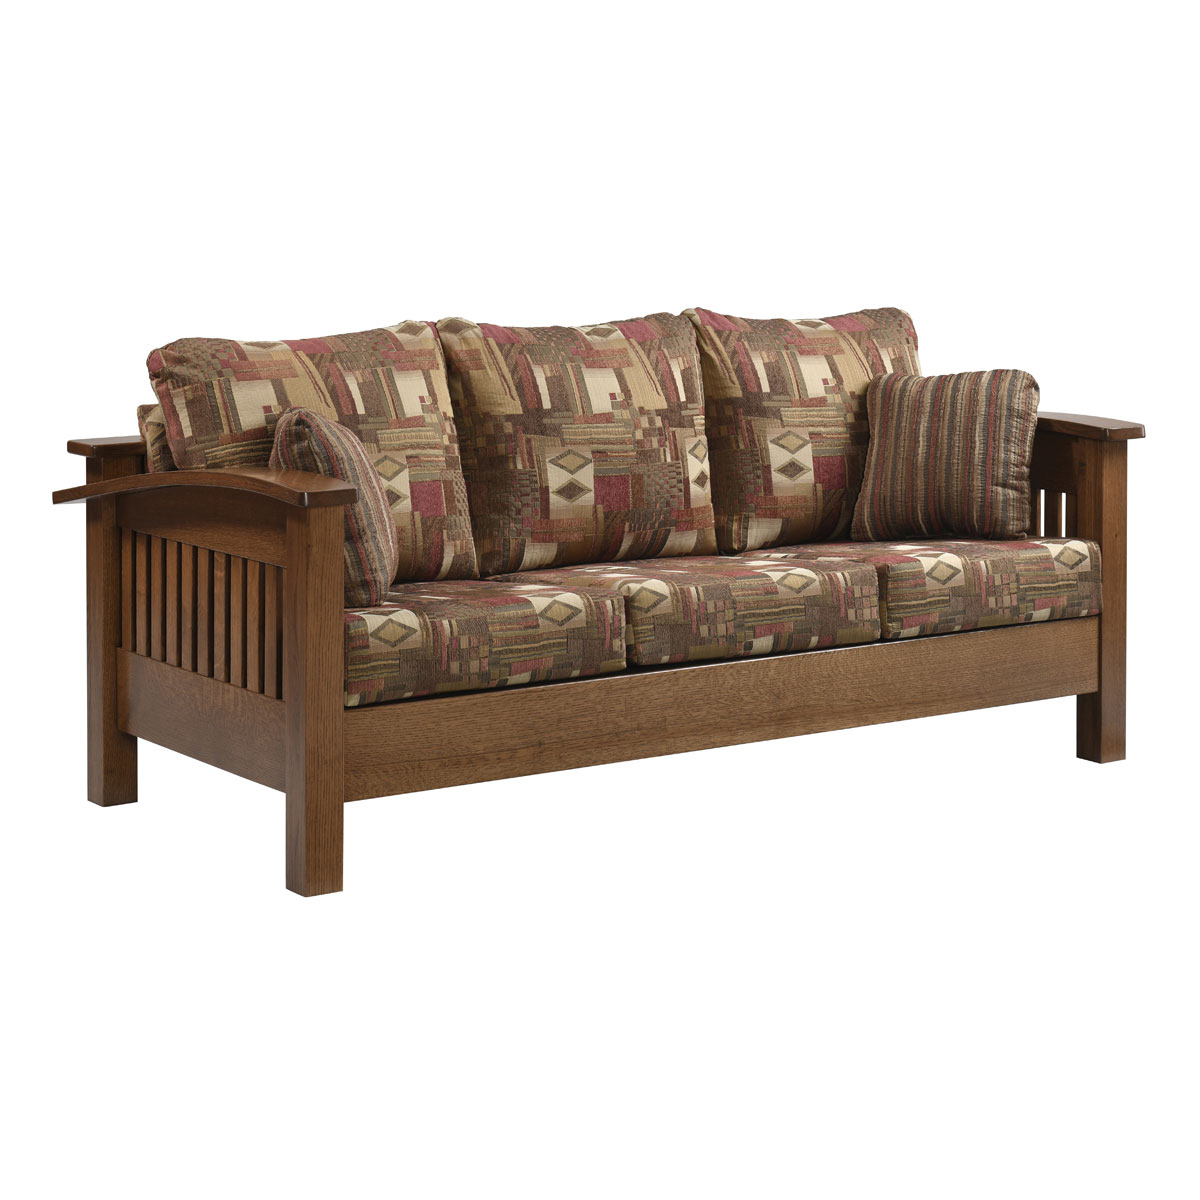 Liberty Mission Collection Sofa